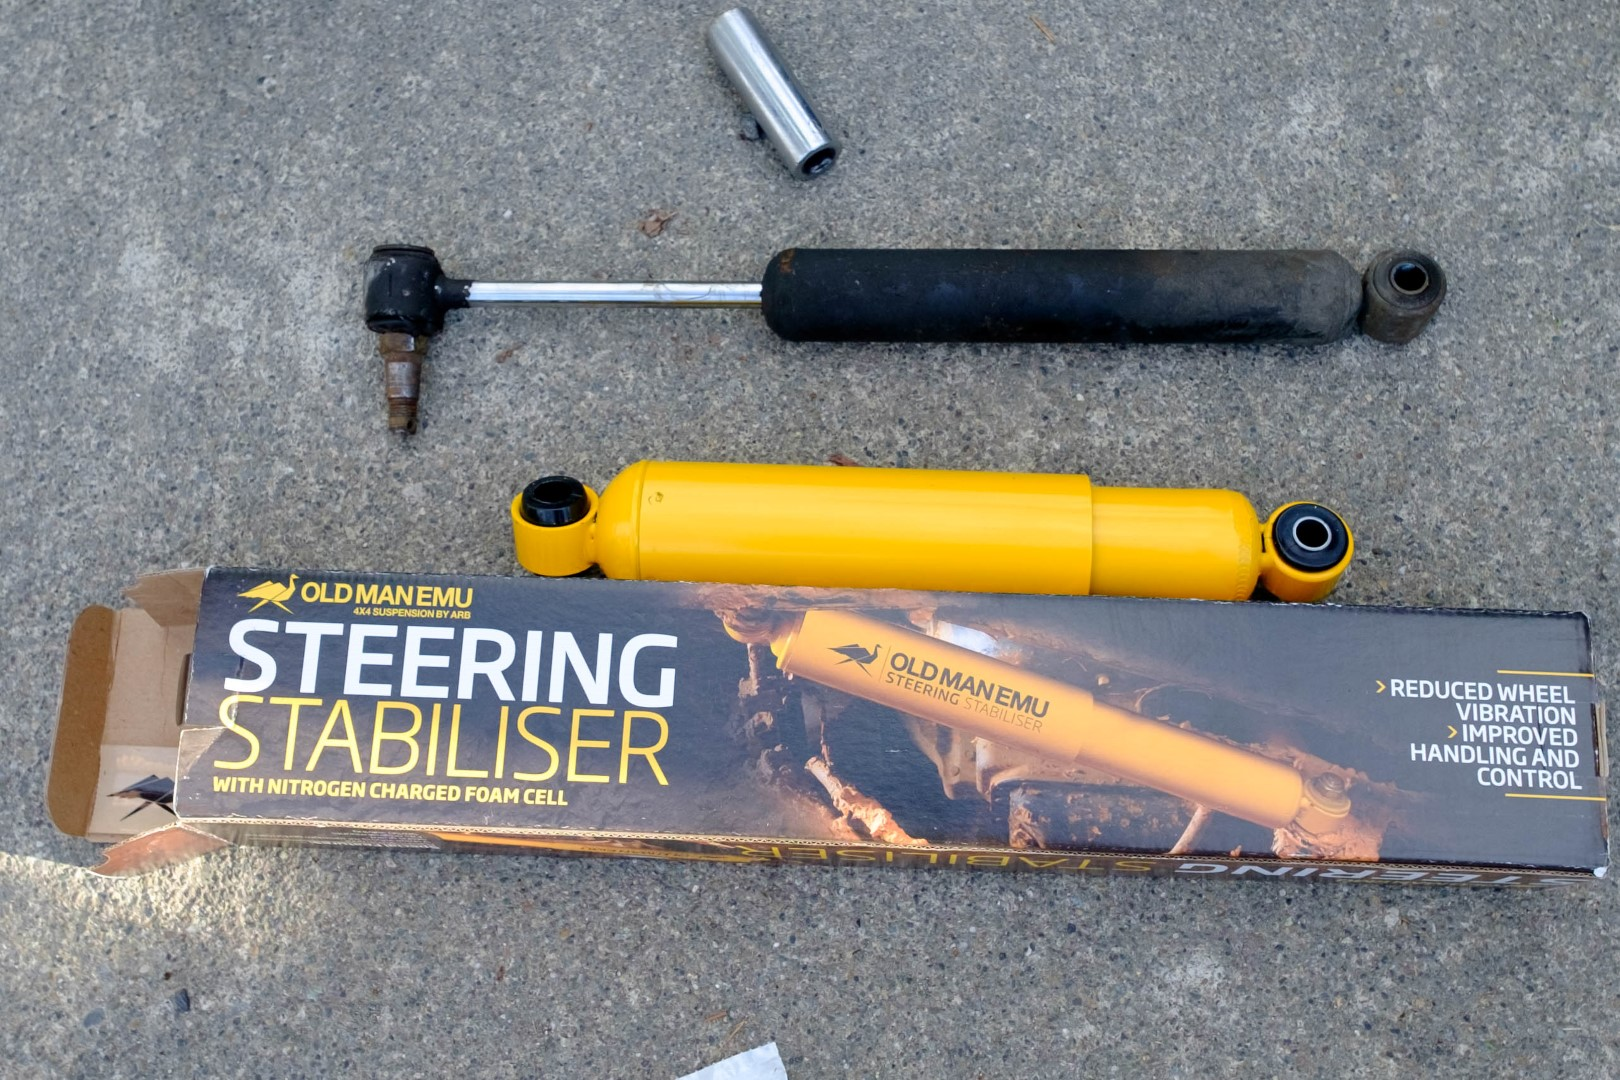 New steering stabilizer